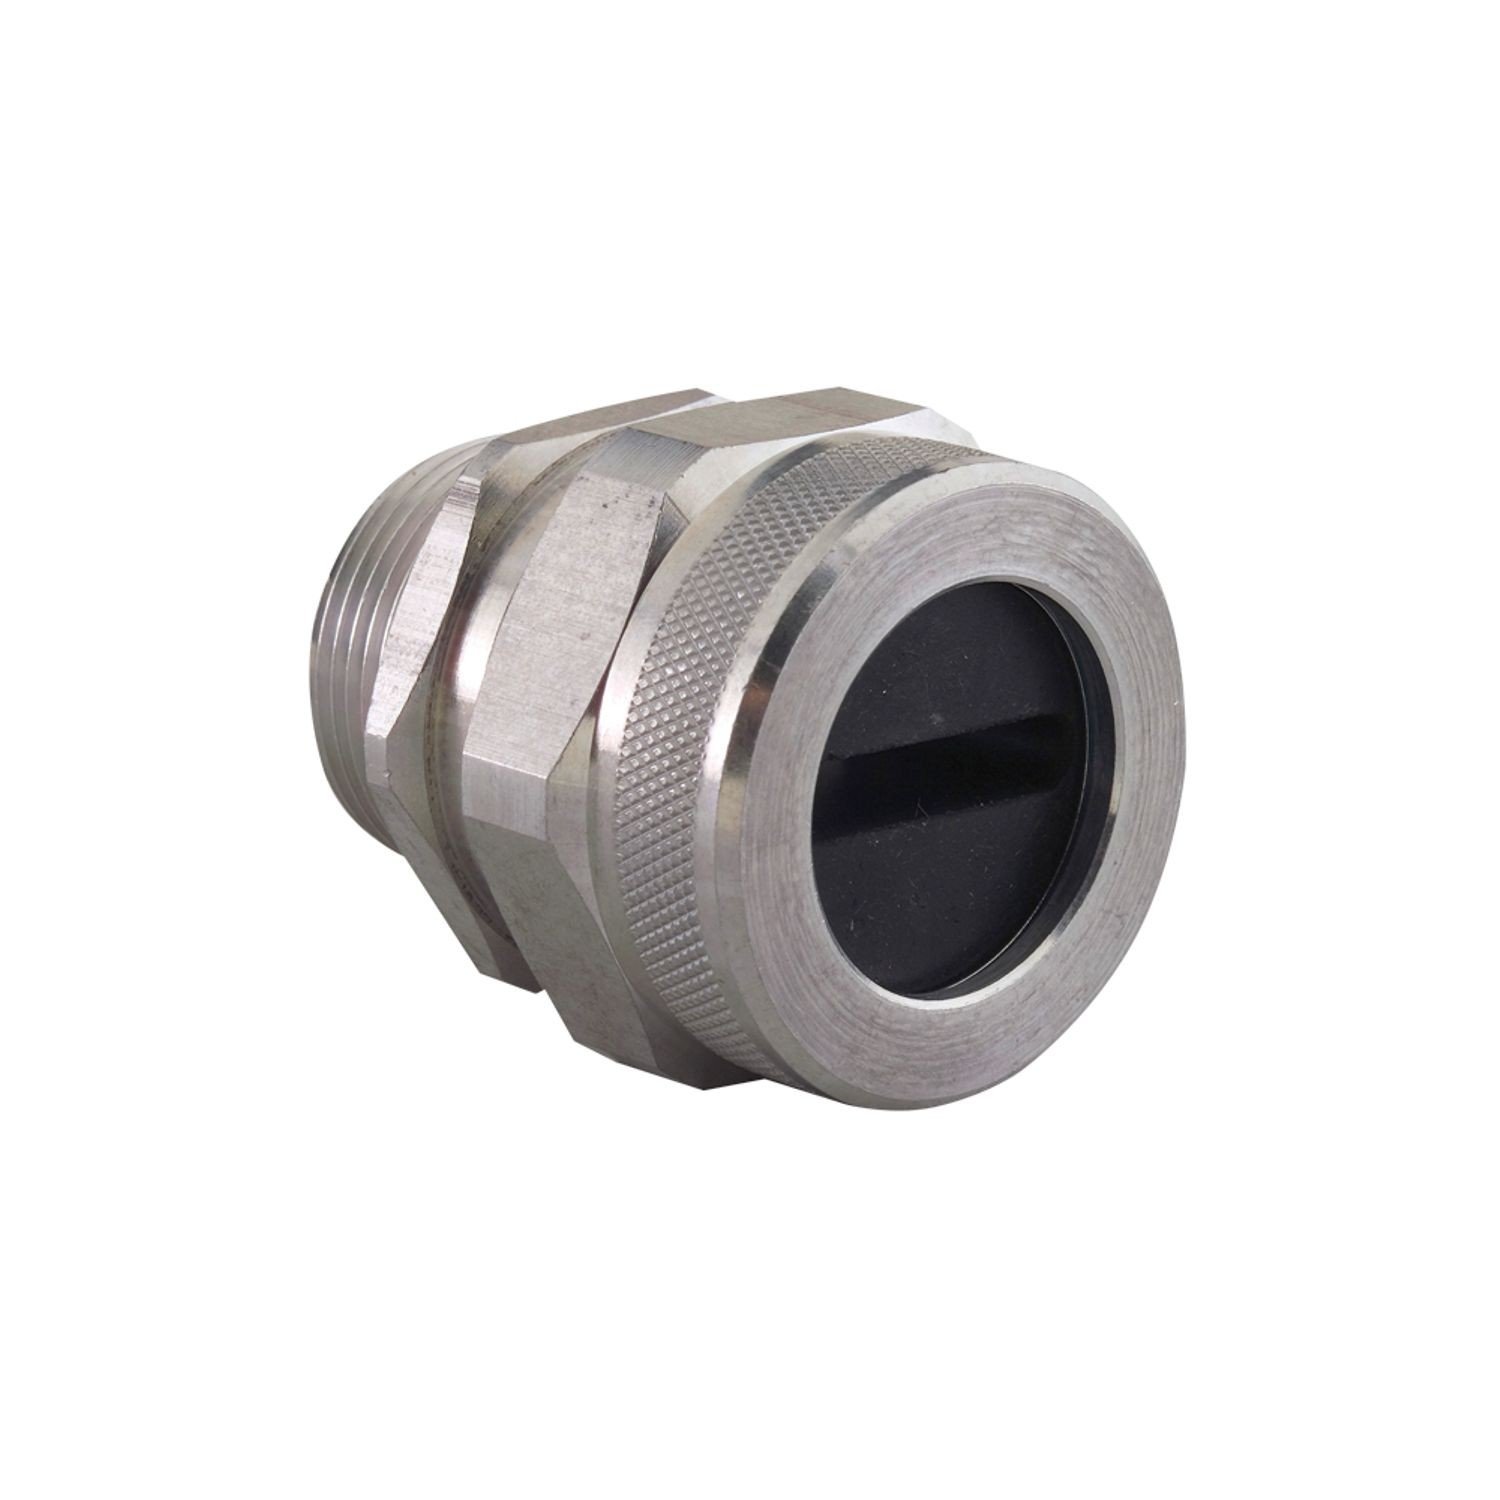 RSF Series Aluminum Festoon Cable Connector, 2-1|2"|1500|1500|?|en|2|8ac3d92a77f40010fb793b224c2fdd90|False|UNLIKELY|0.2884829640388489